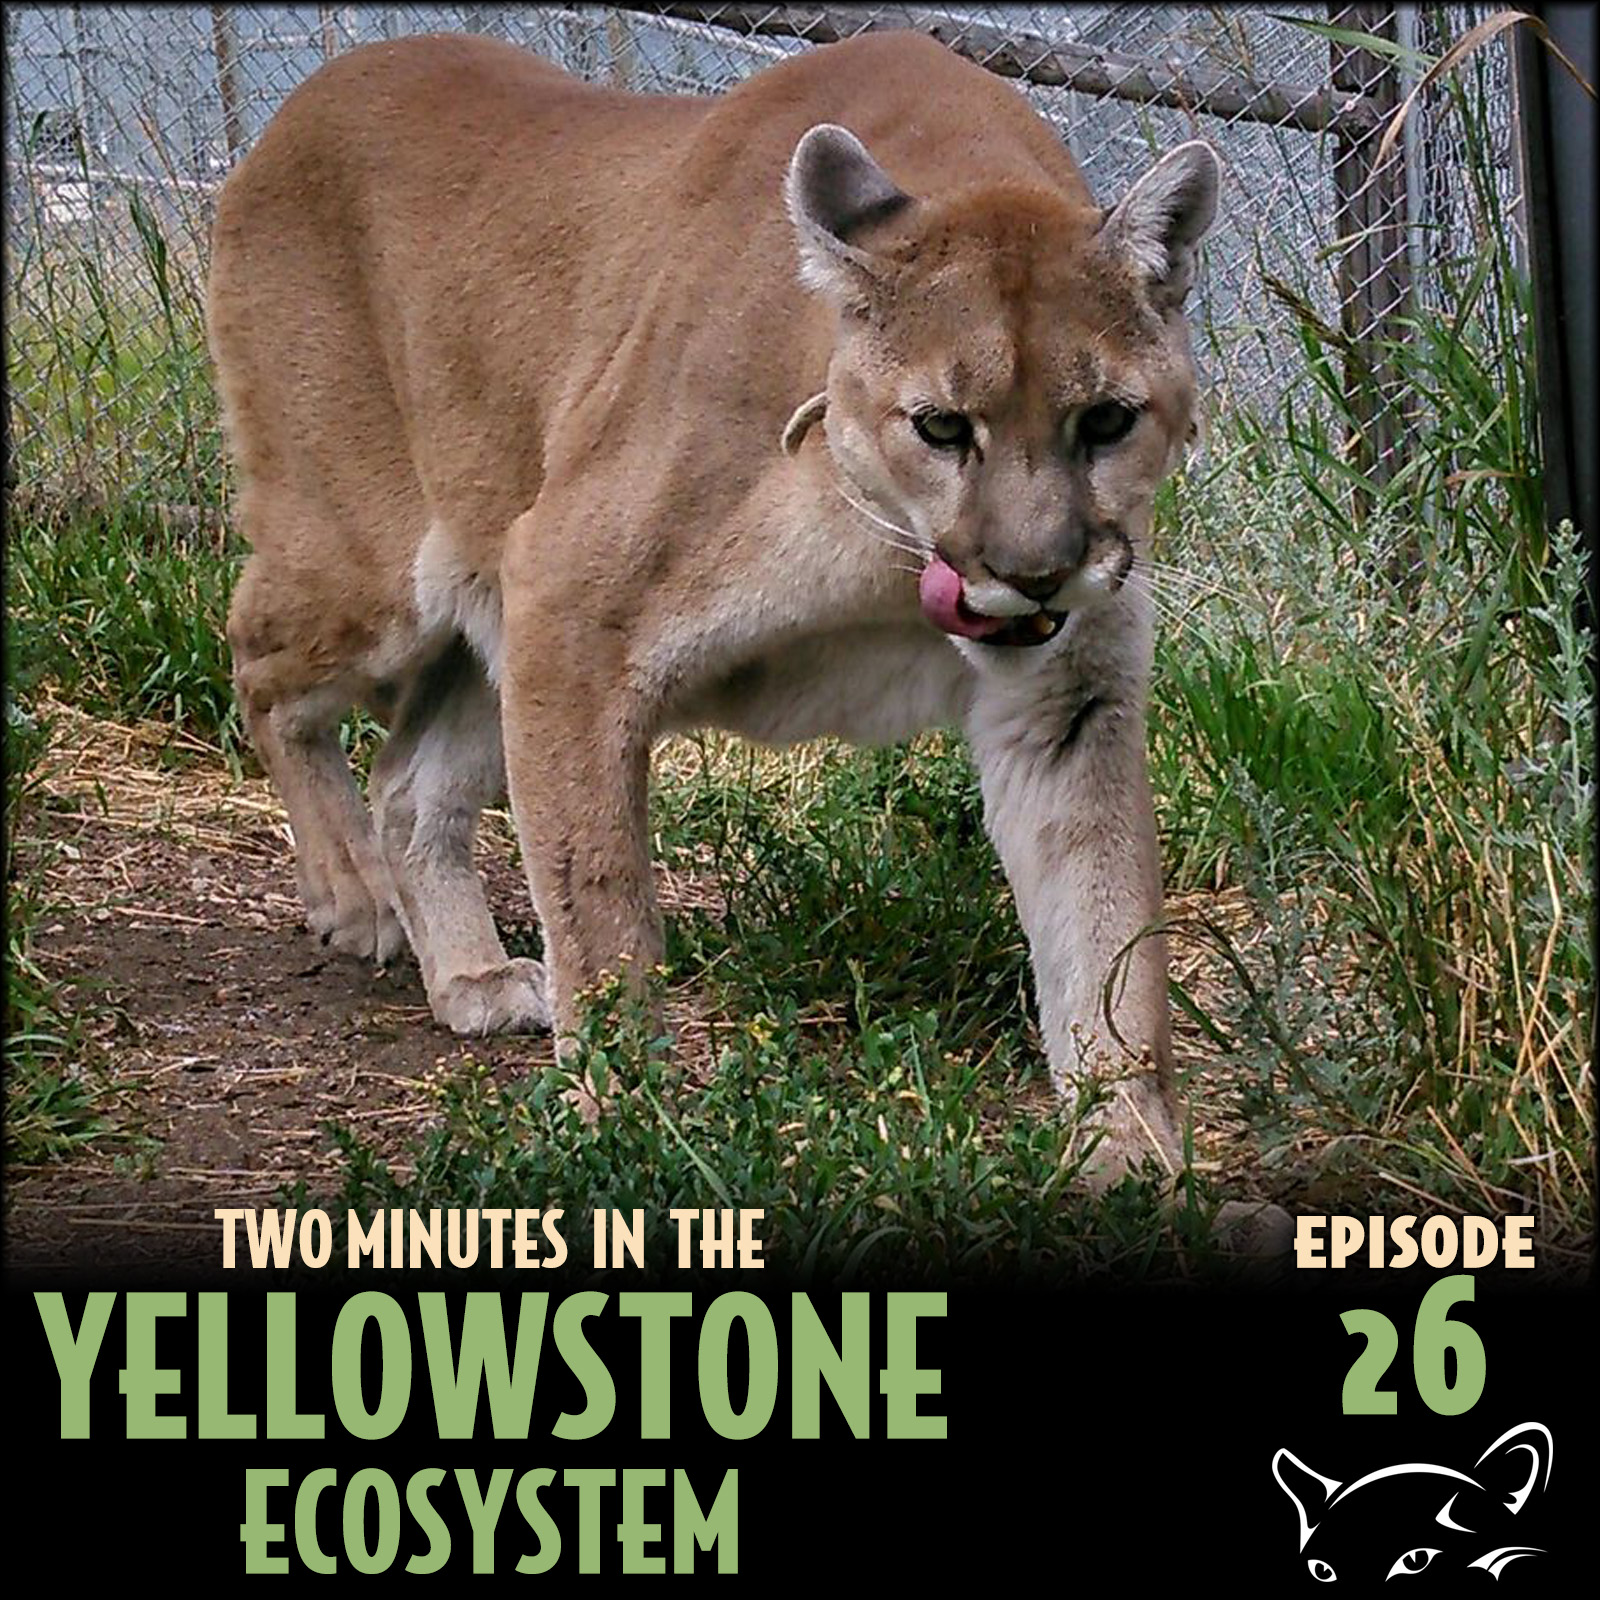 Episode 26: Mountain Lions